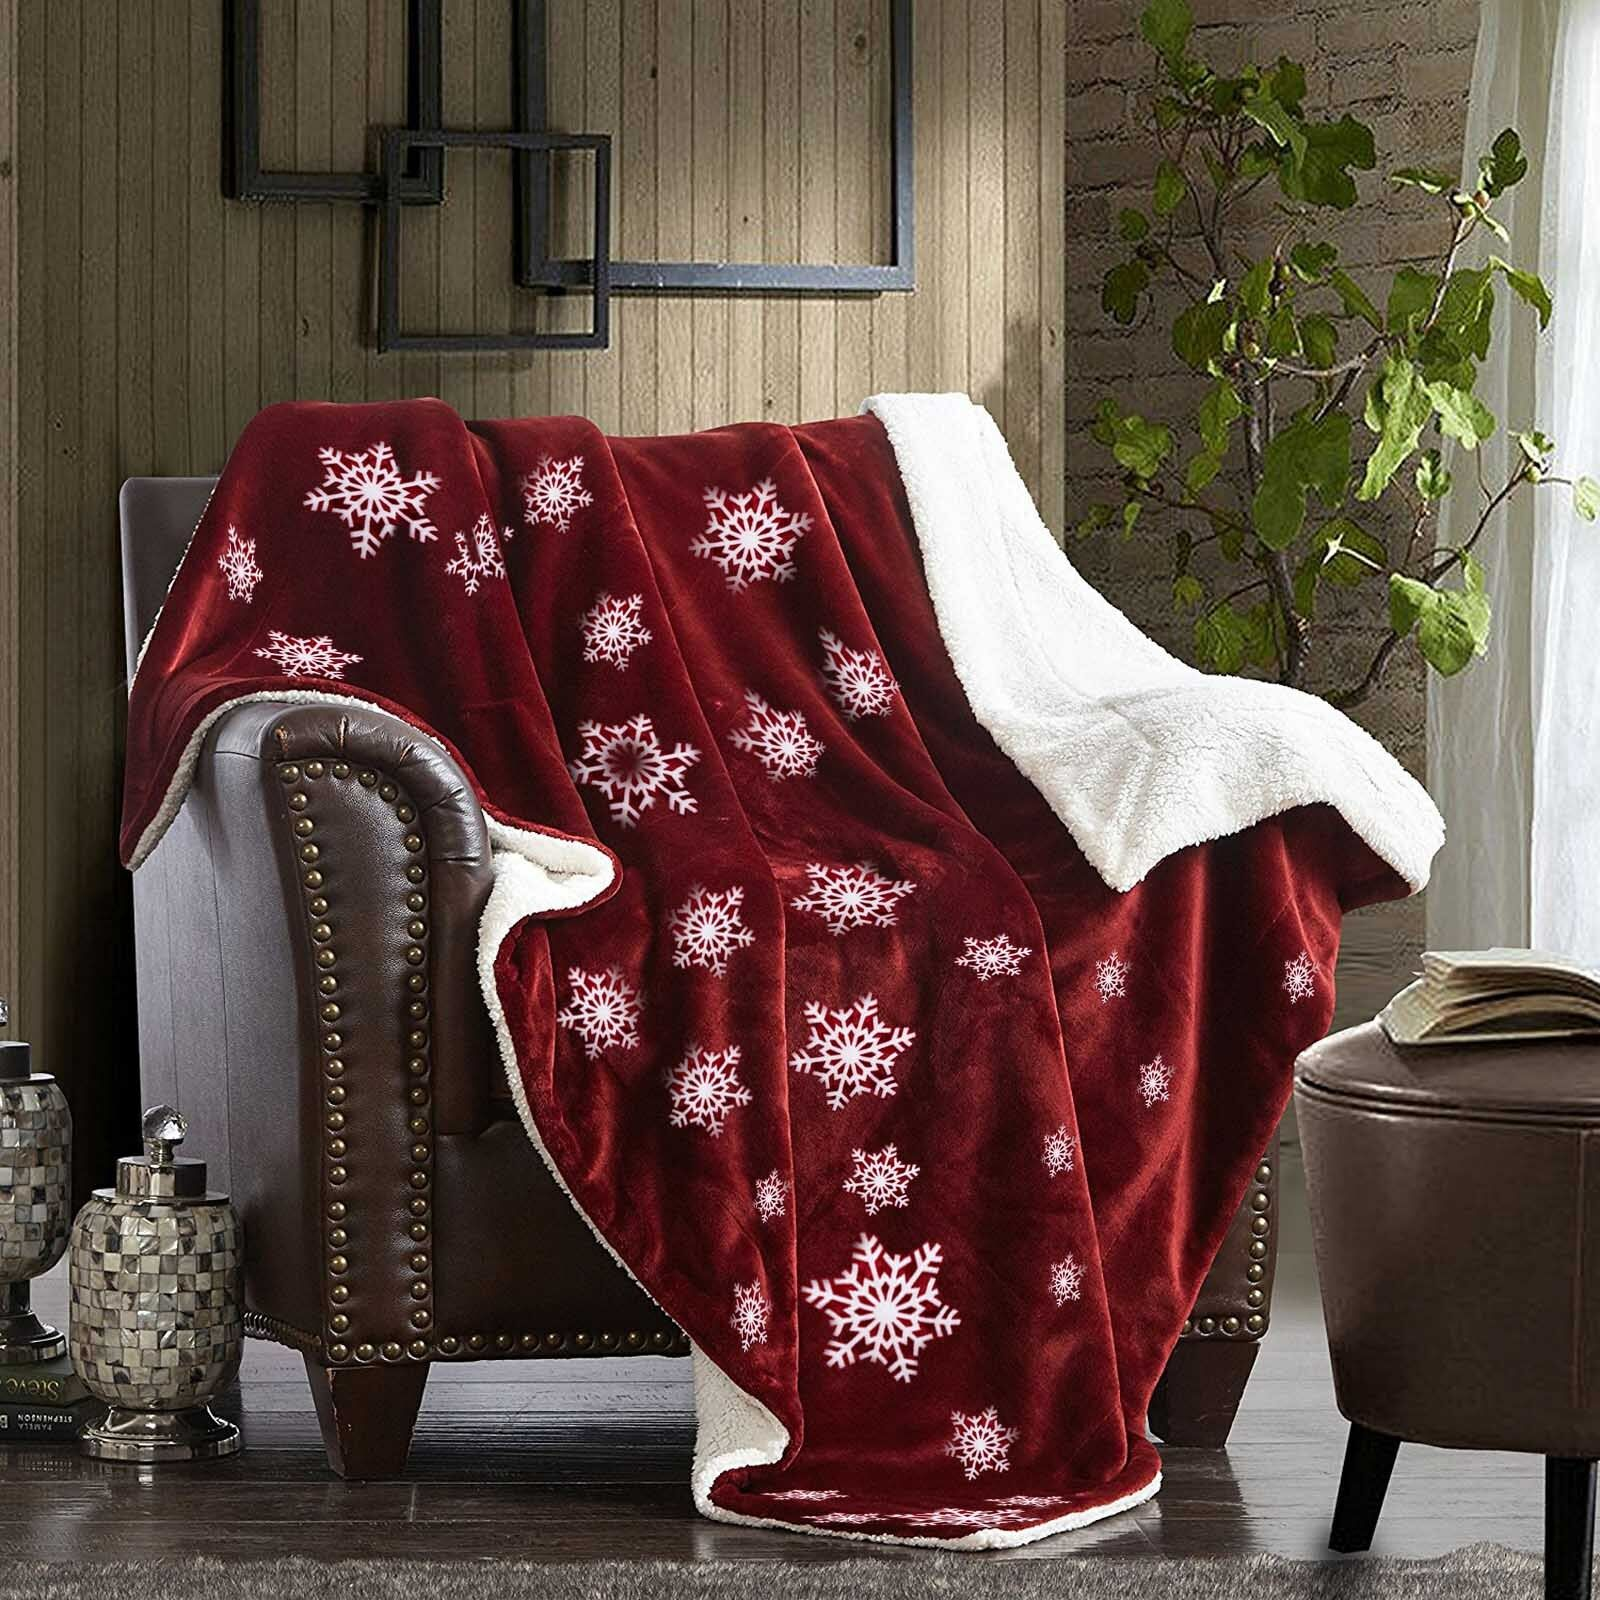 2018 Christmas Snowflake Autumn Winter Europe Modern Home Sofa Bed Cover